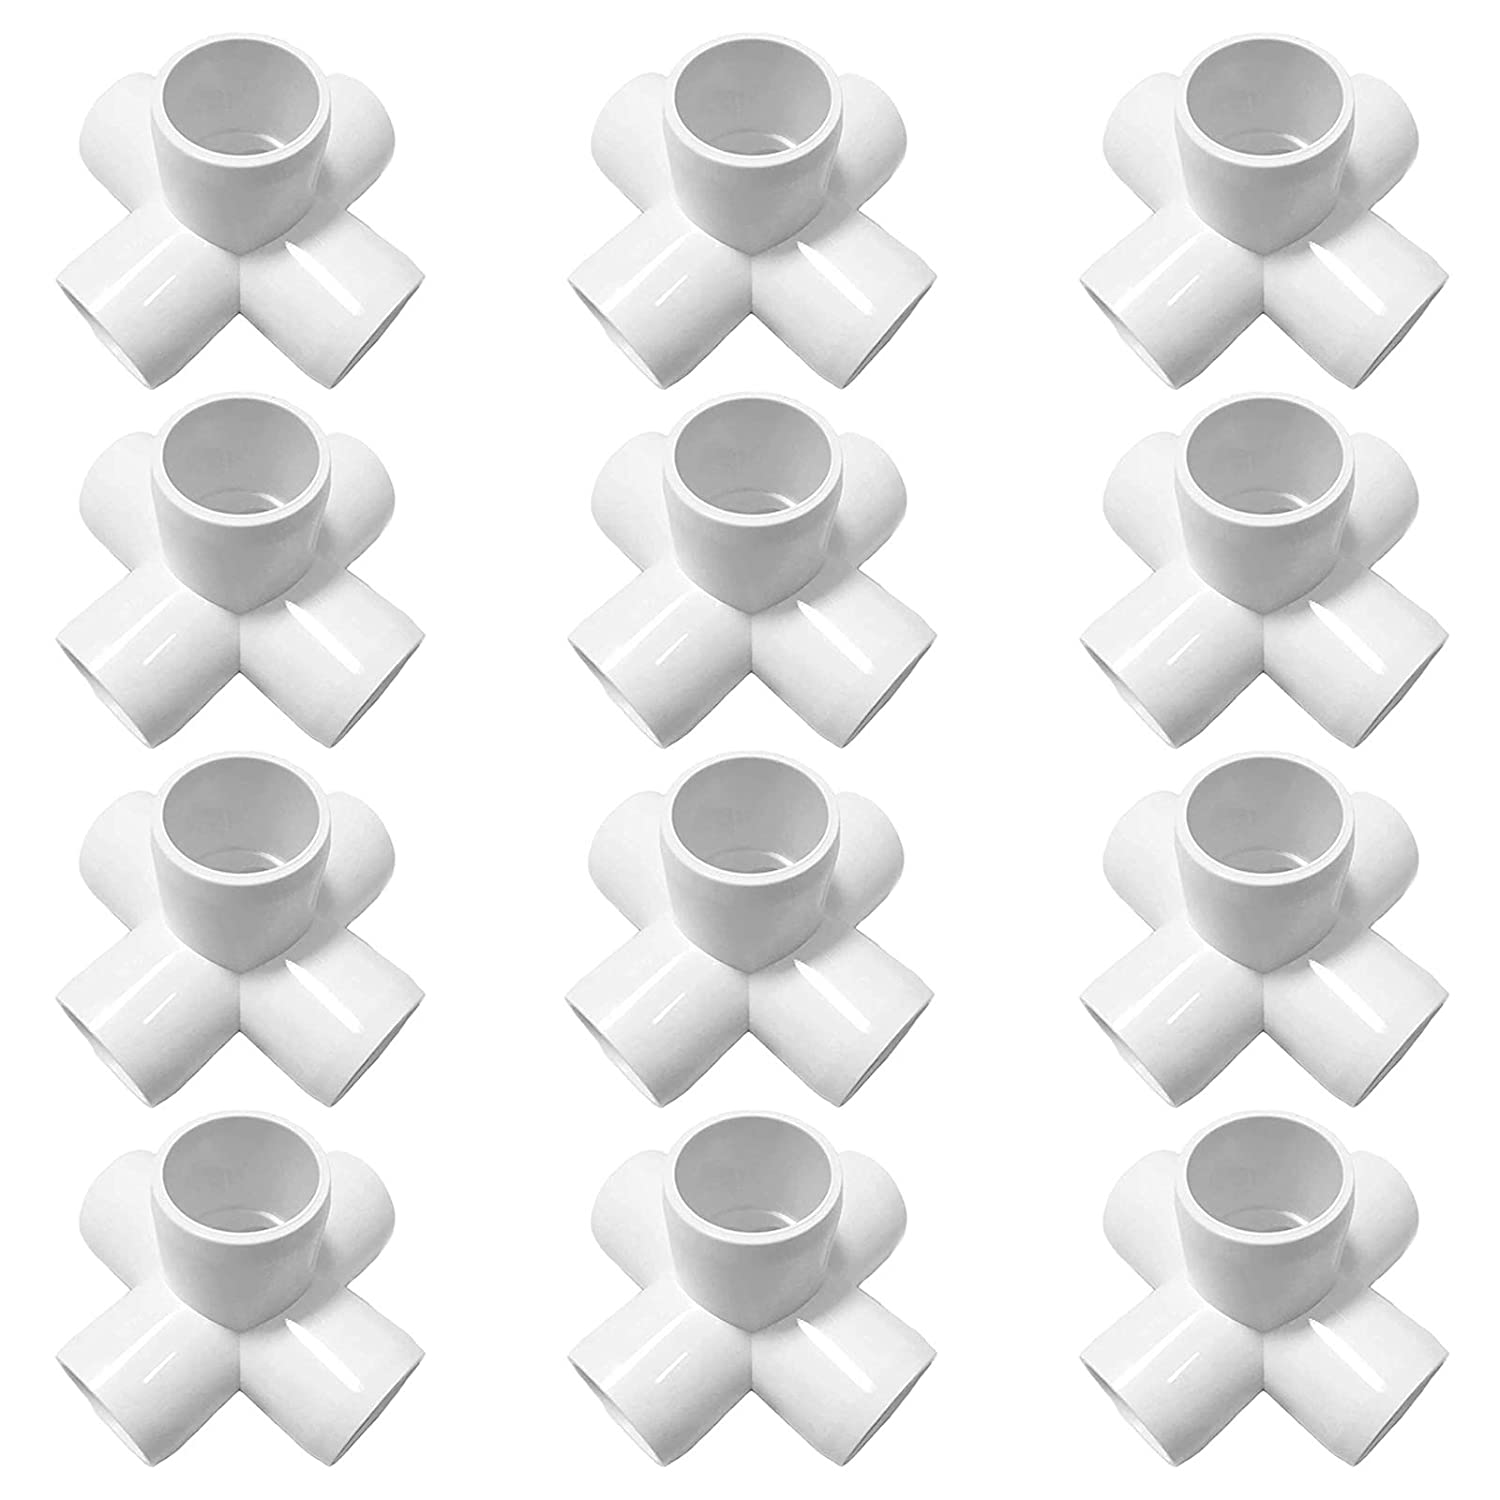 12 Pack 1 Inch 5 Way PVC Elbow Fittings, 5-Way Cross PVC Fitting Connector for Build Heavy Duty PVC Furniture, 5 Way 1 Inch PVC Pipe Joint, PVC Pipe Corner Fitting,White